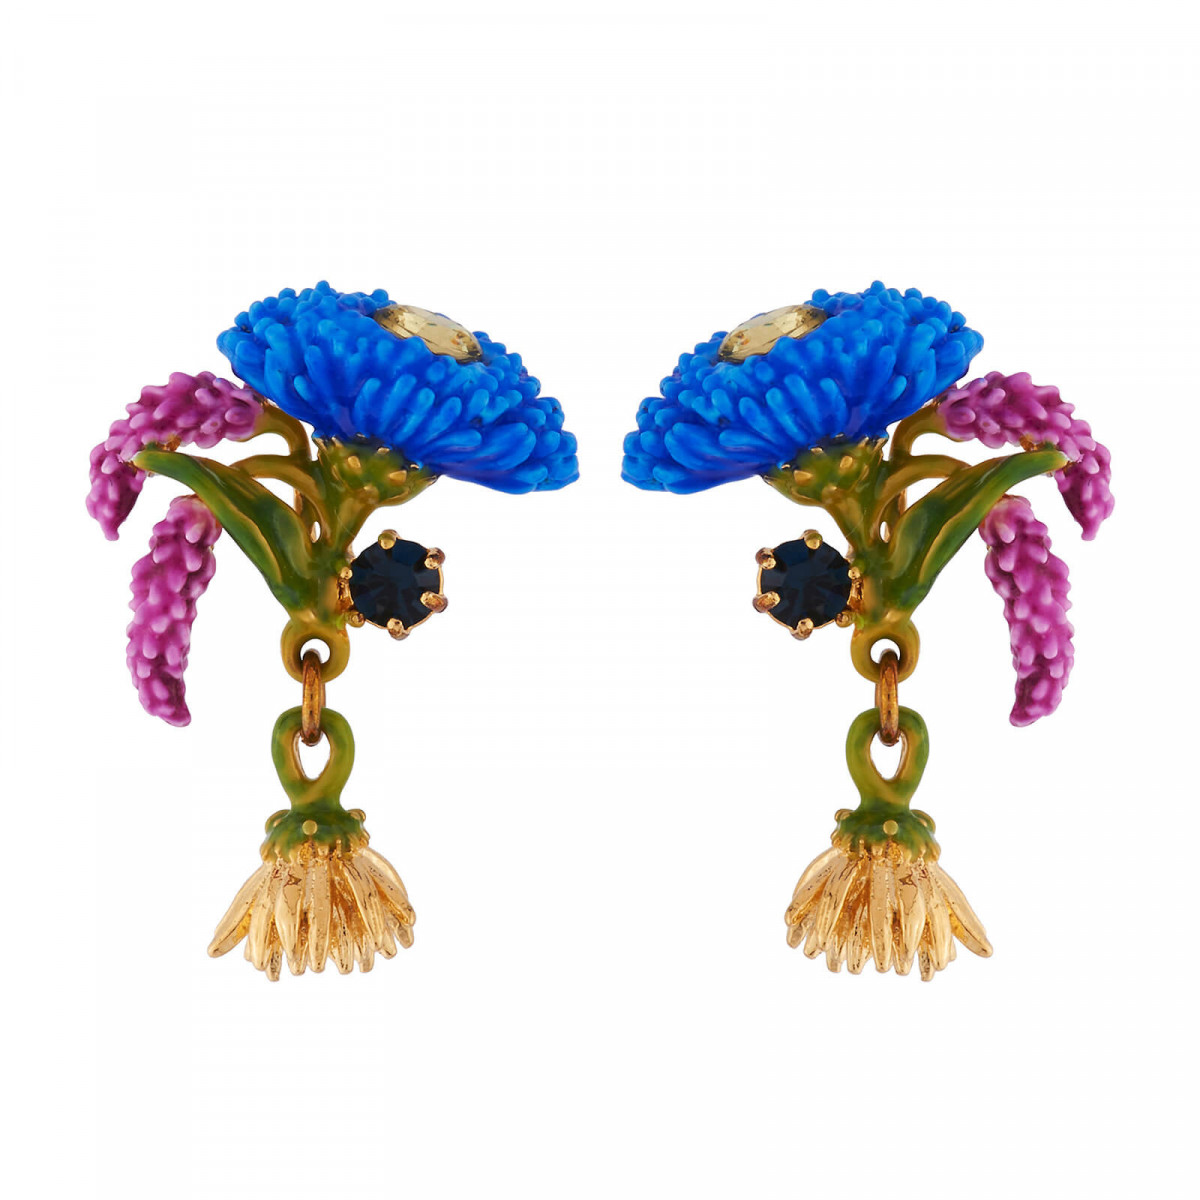 b117edb8847e83 Discover our blue and falling flowers, rhinestone earrings ! These earrings  are made up in a 14kt gold plated, hand enameled brass. This piece of  jewellery ...